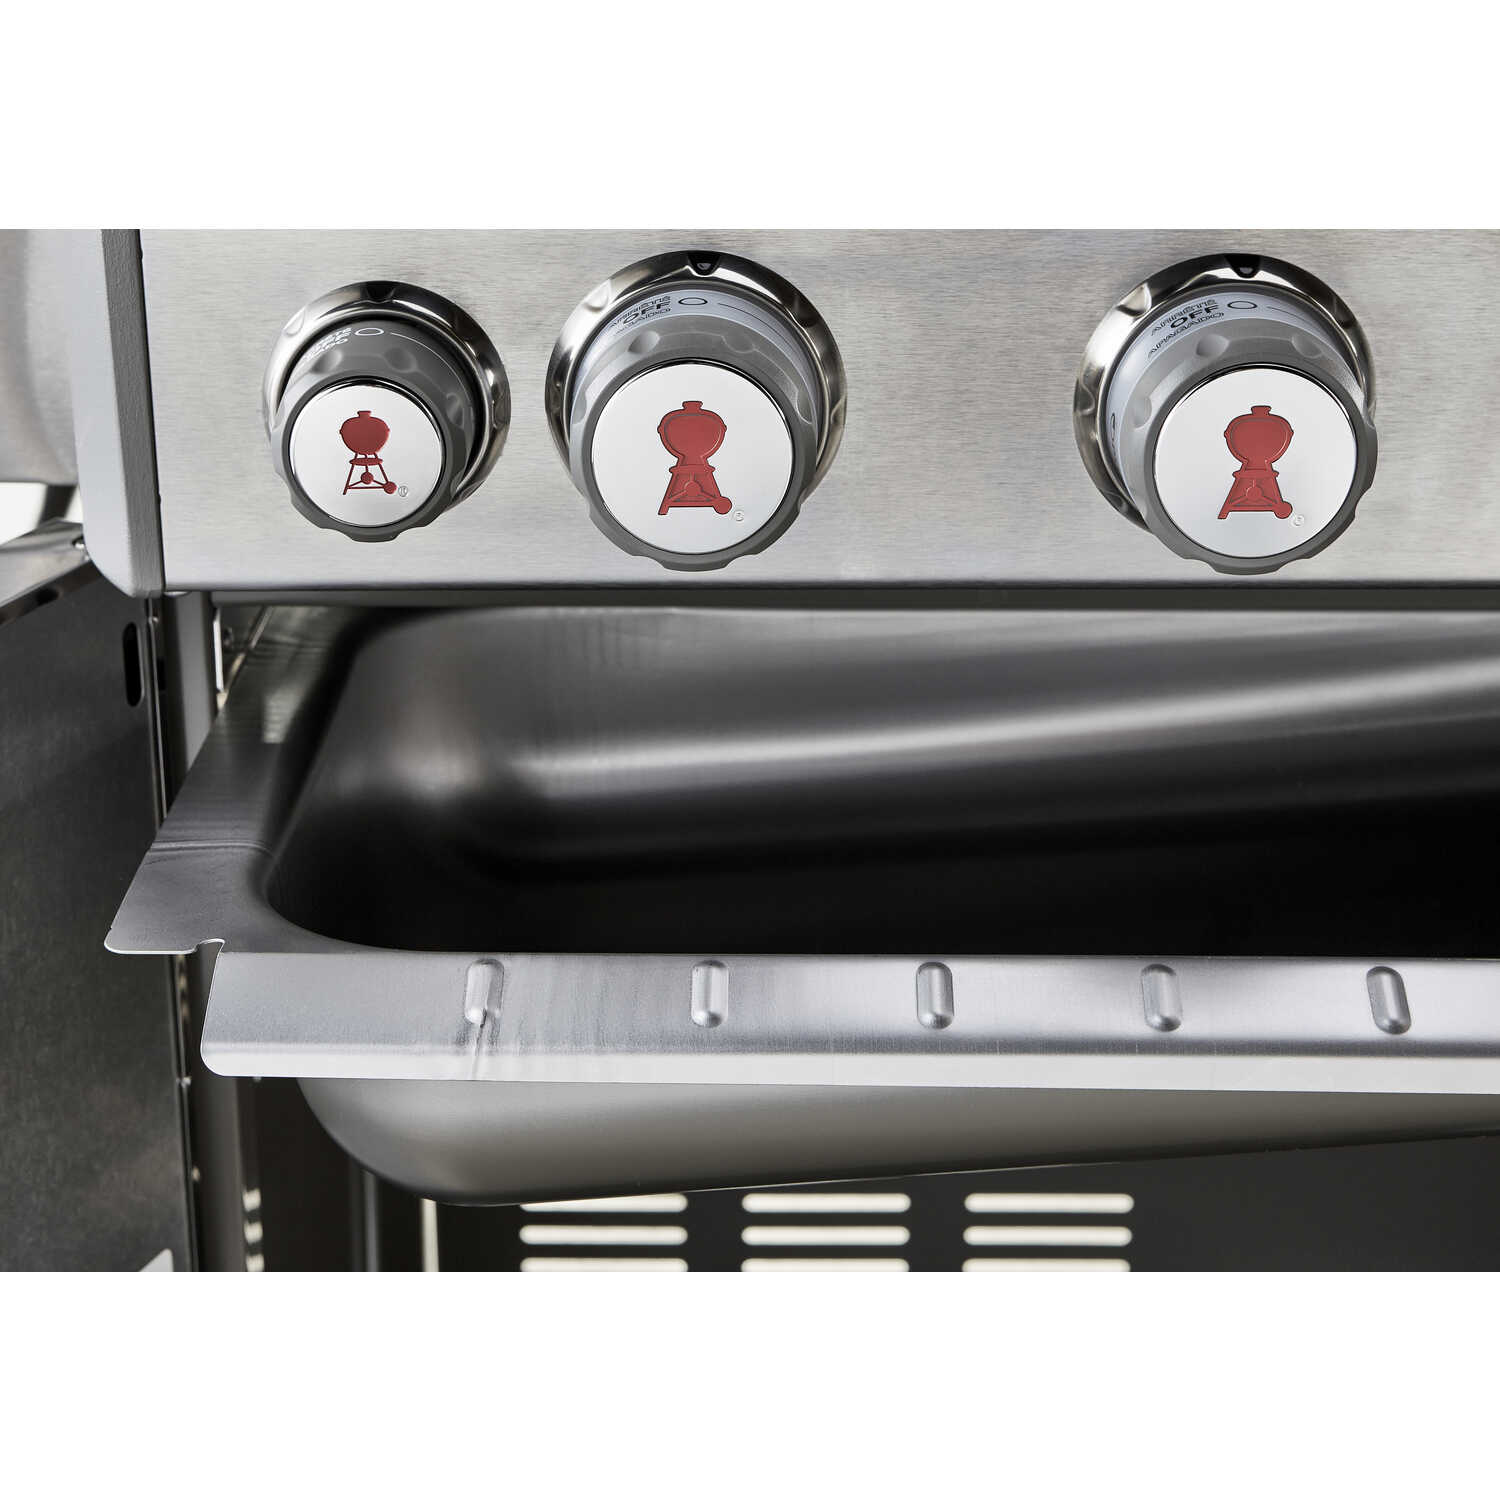 Weber  Summit S-470  4 burners Propane  Grill  Stainless Steel  48800 BTU